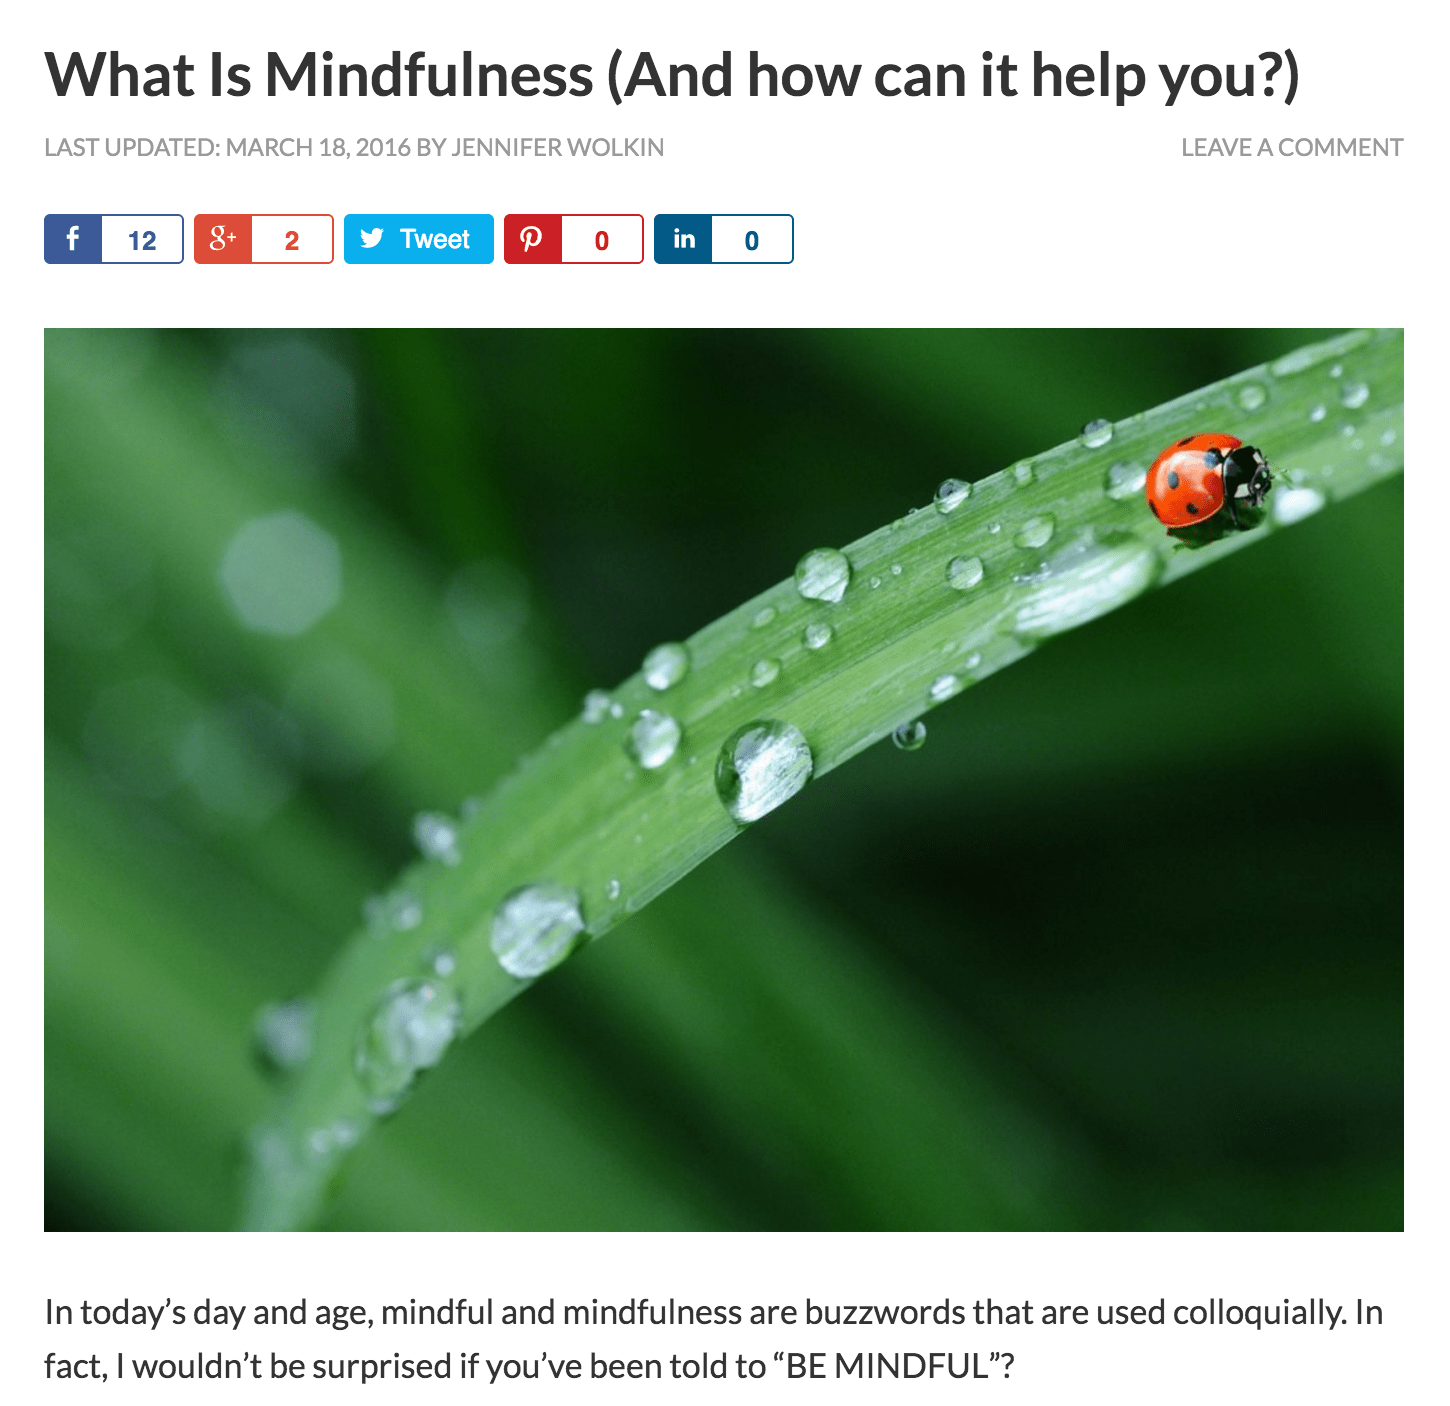 Repost: What Is Mindfulness (And how can it help you?)